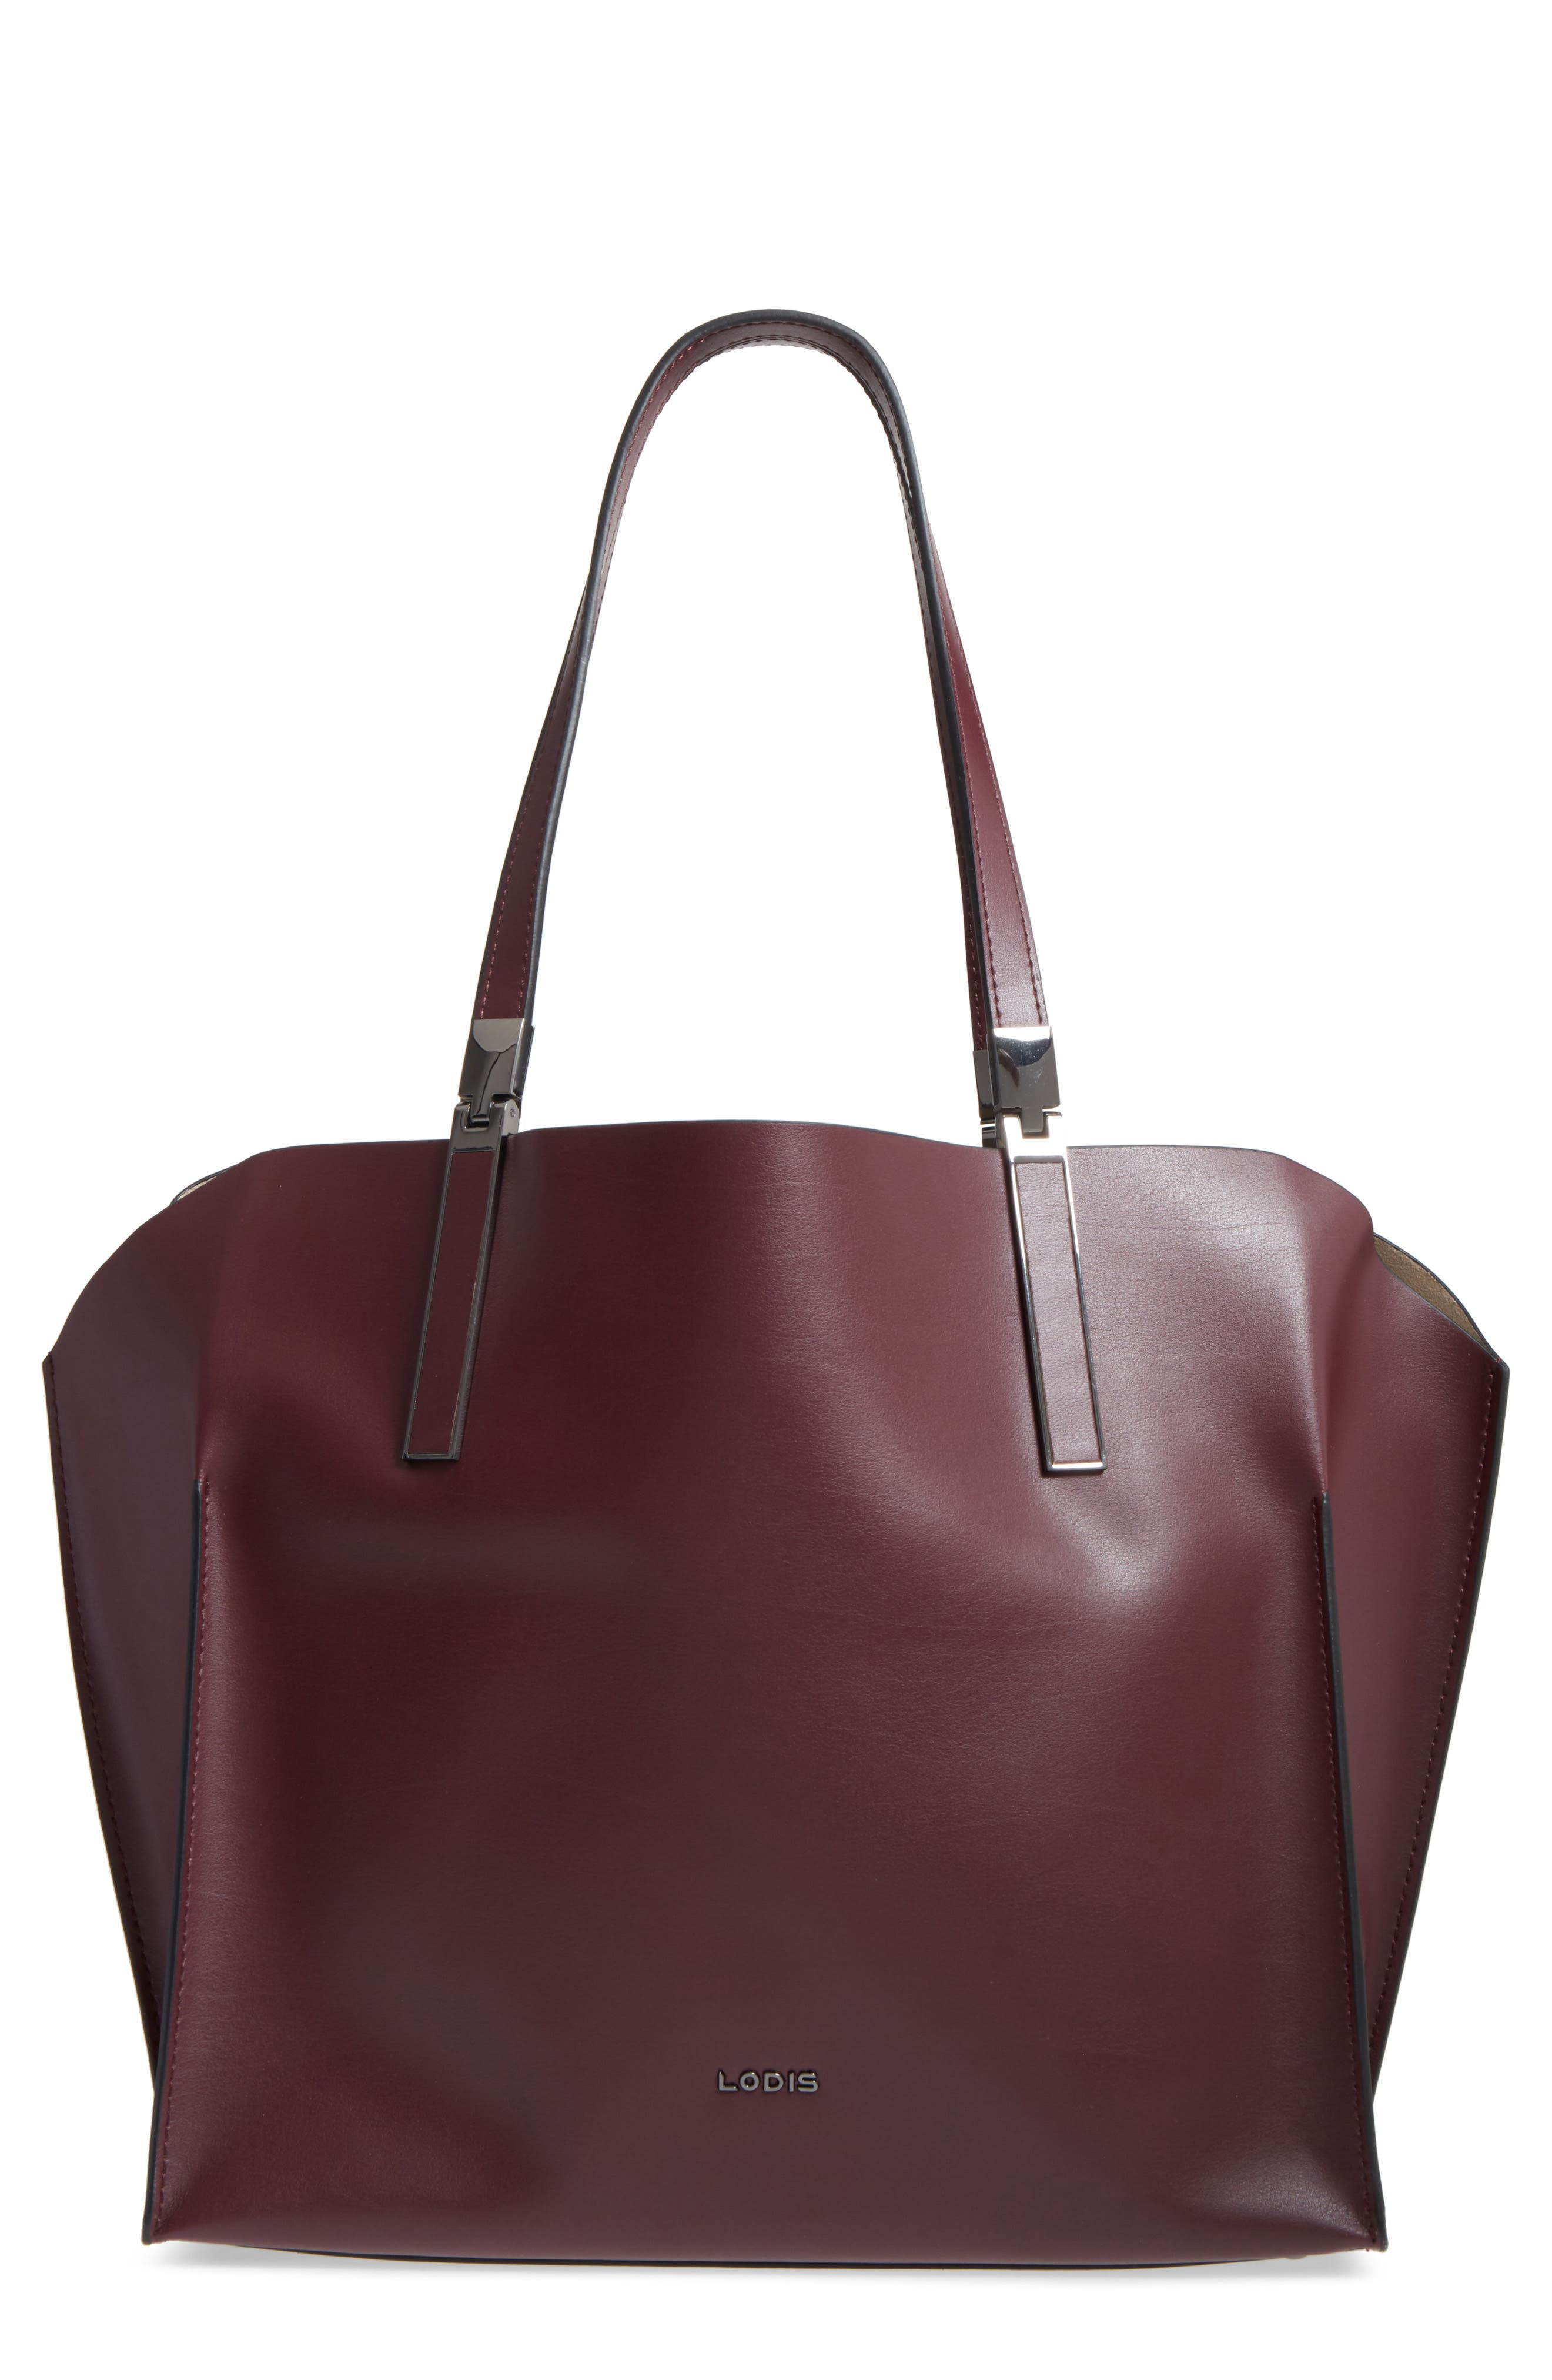 LODIS Silicon Valley Collection Under Lock & Key - Anita RFID East/West Leather Satchel,                             Main thumbnail 1, color,                             Chianti/ Taupe